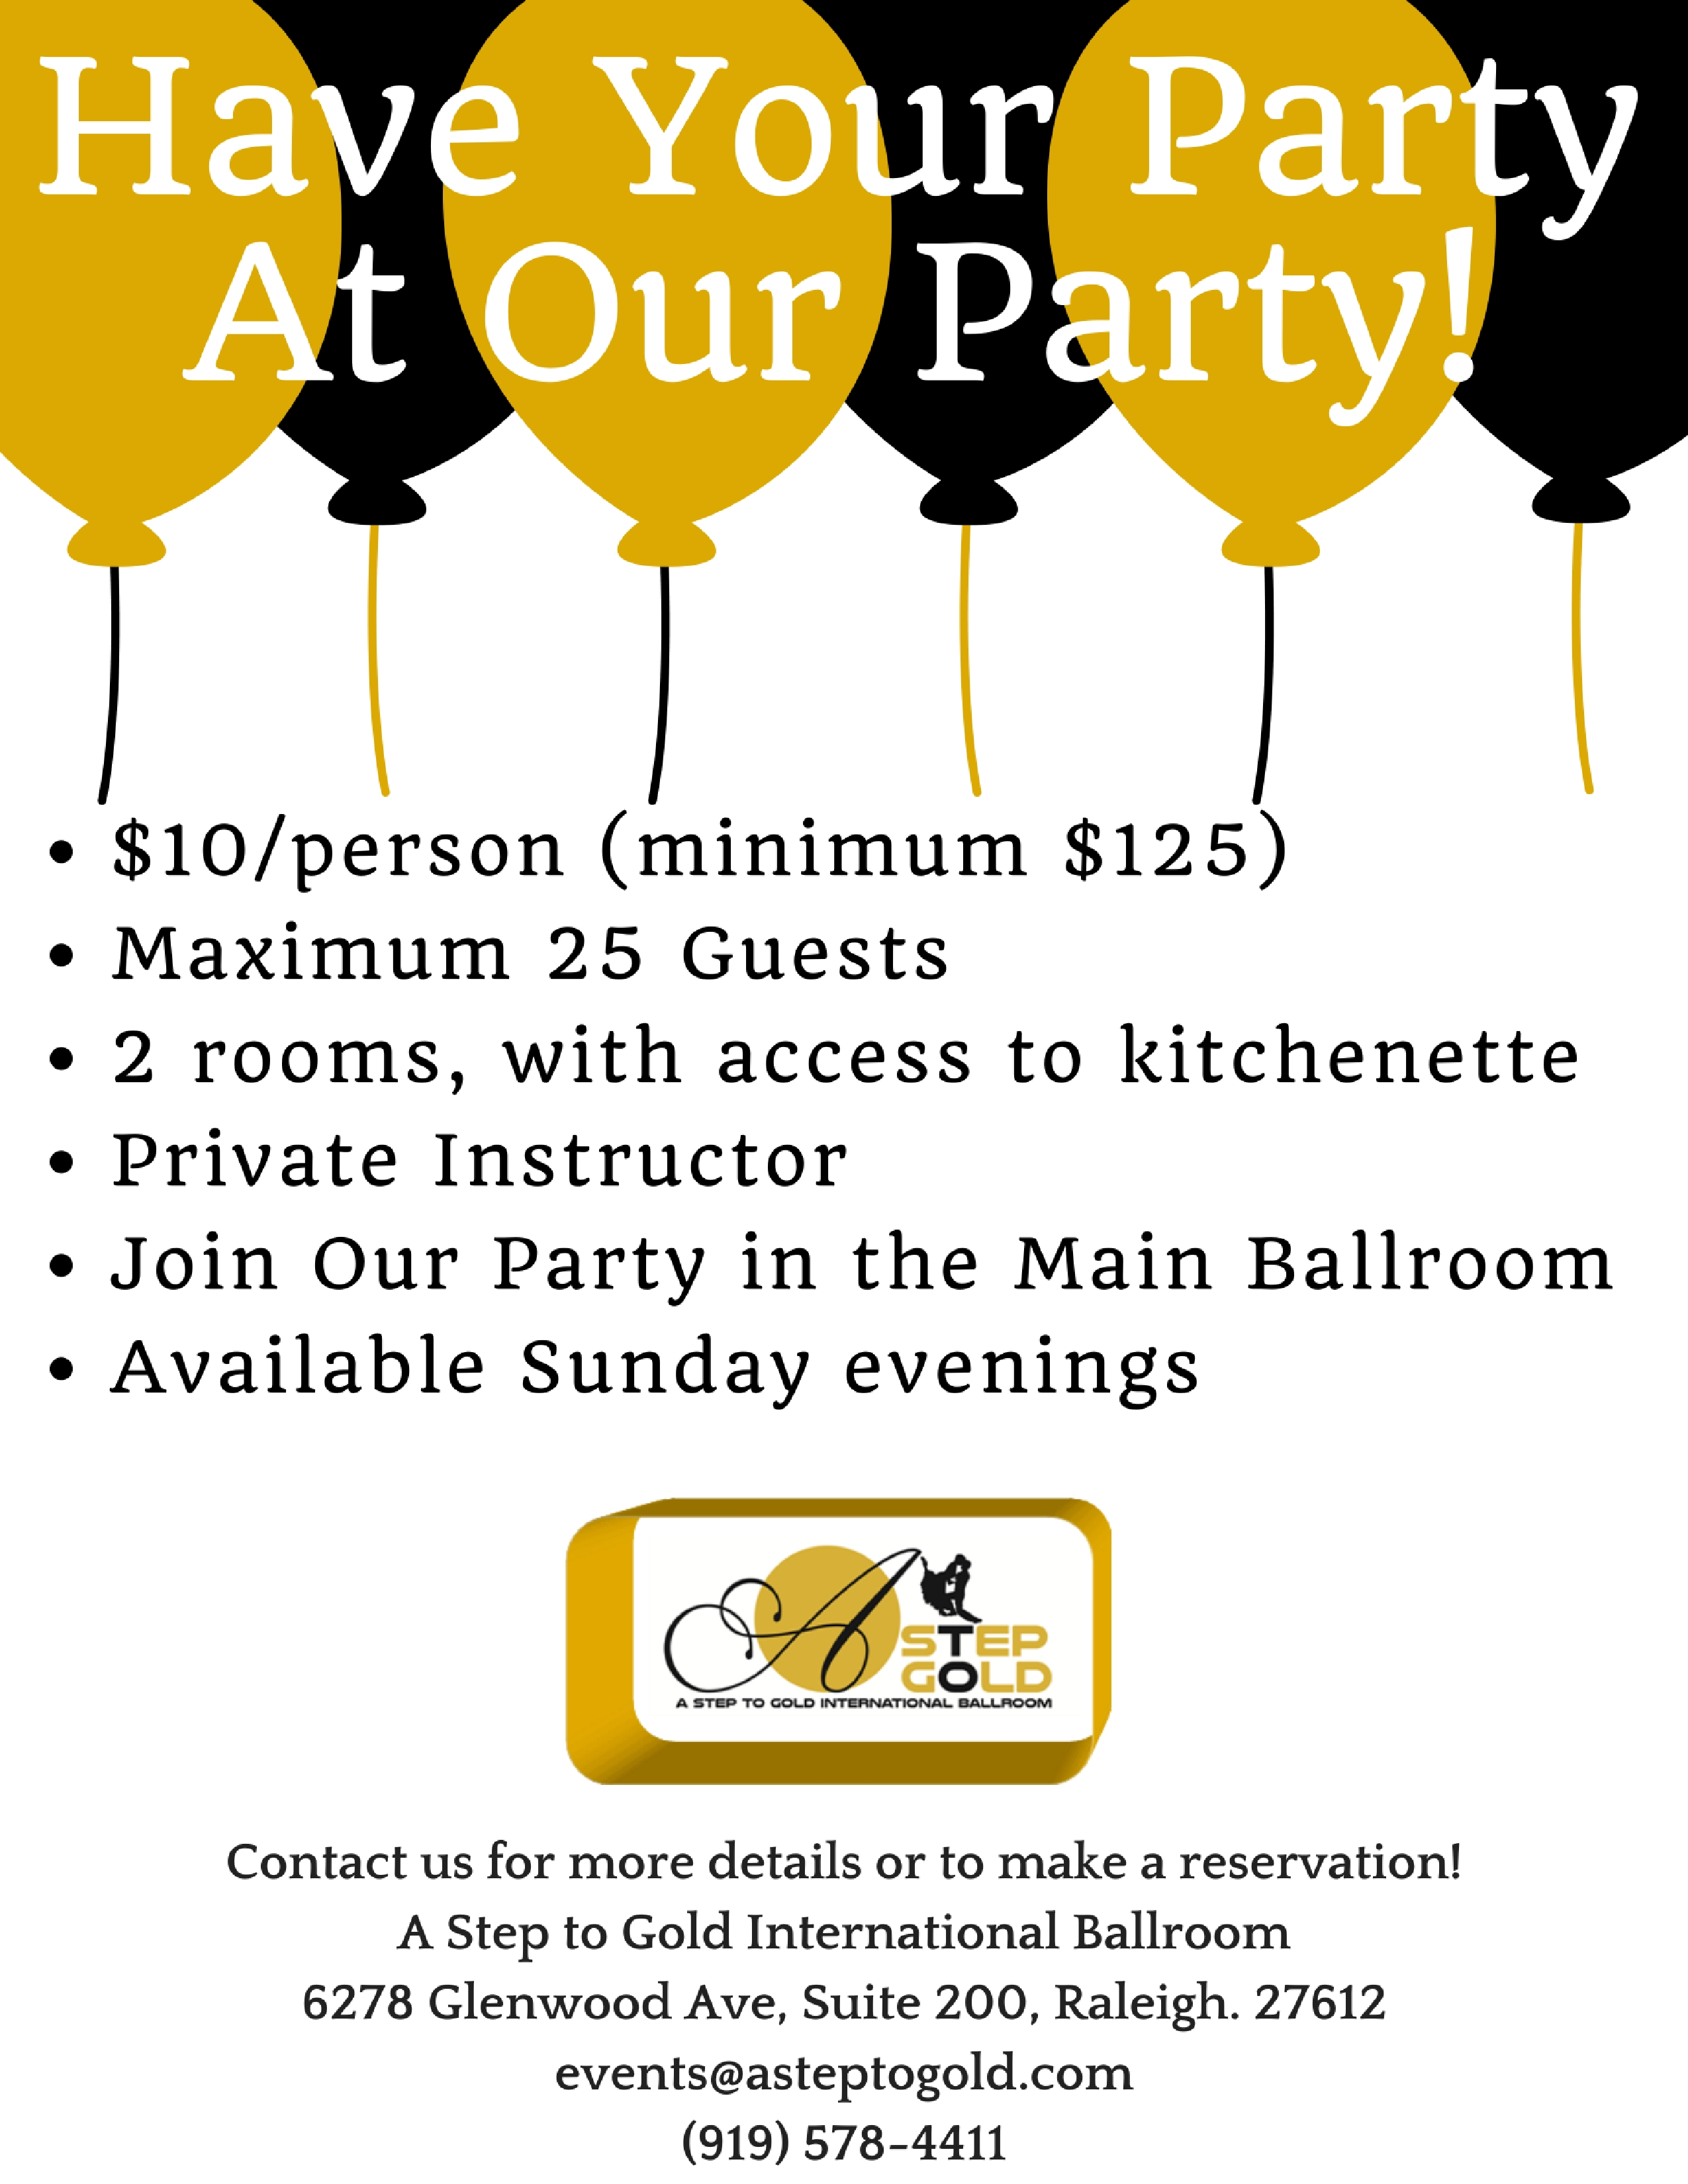 Have Your Party At Our Party!